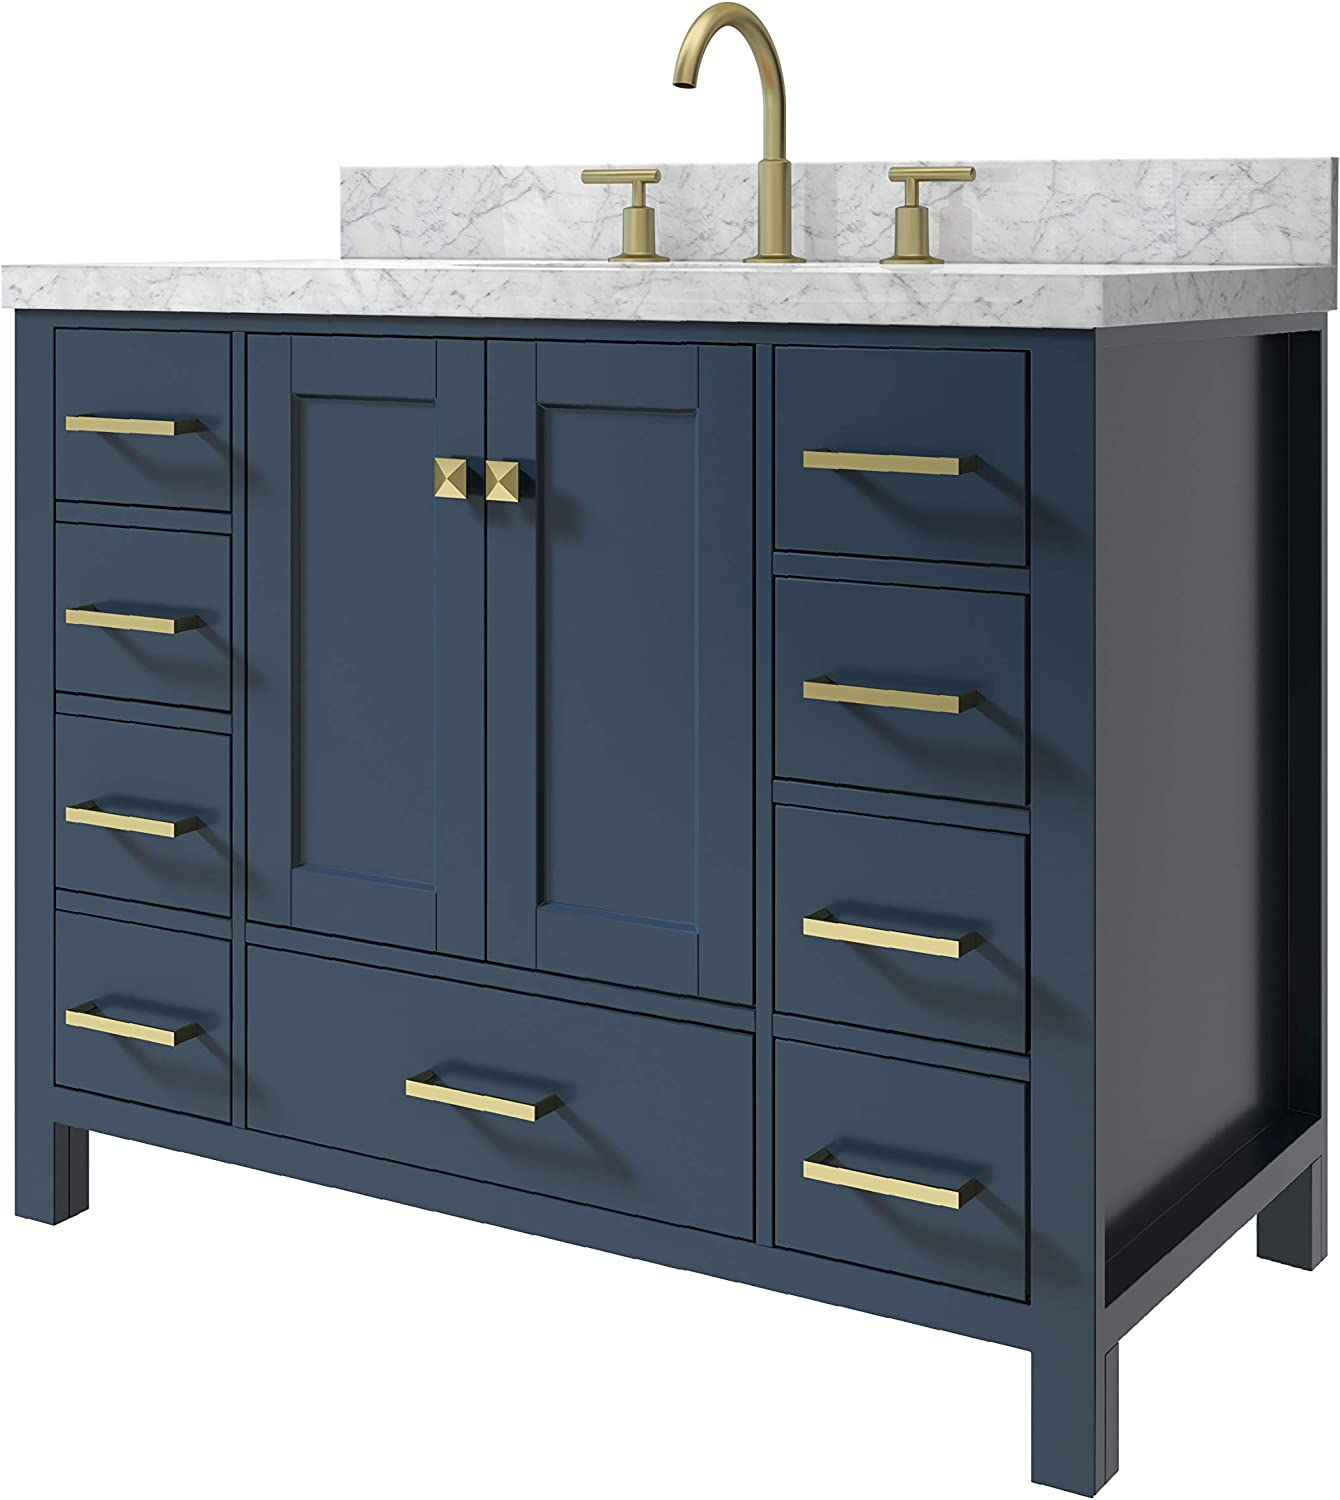 2 Soft Closing Doors 5 Full Extension Dovetail Drawers ARIEL Bathroom Vanity 43 Inch with Carrara White Marble Countertop and Oval Sink in Espresso with Backsplash No Mirror